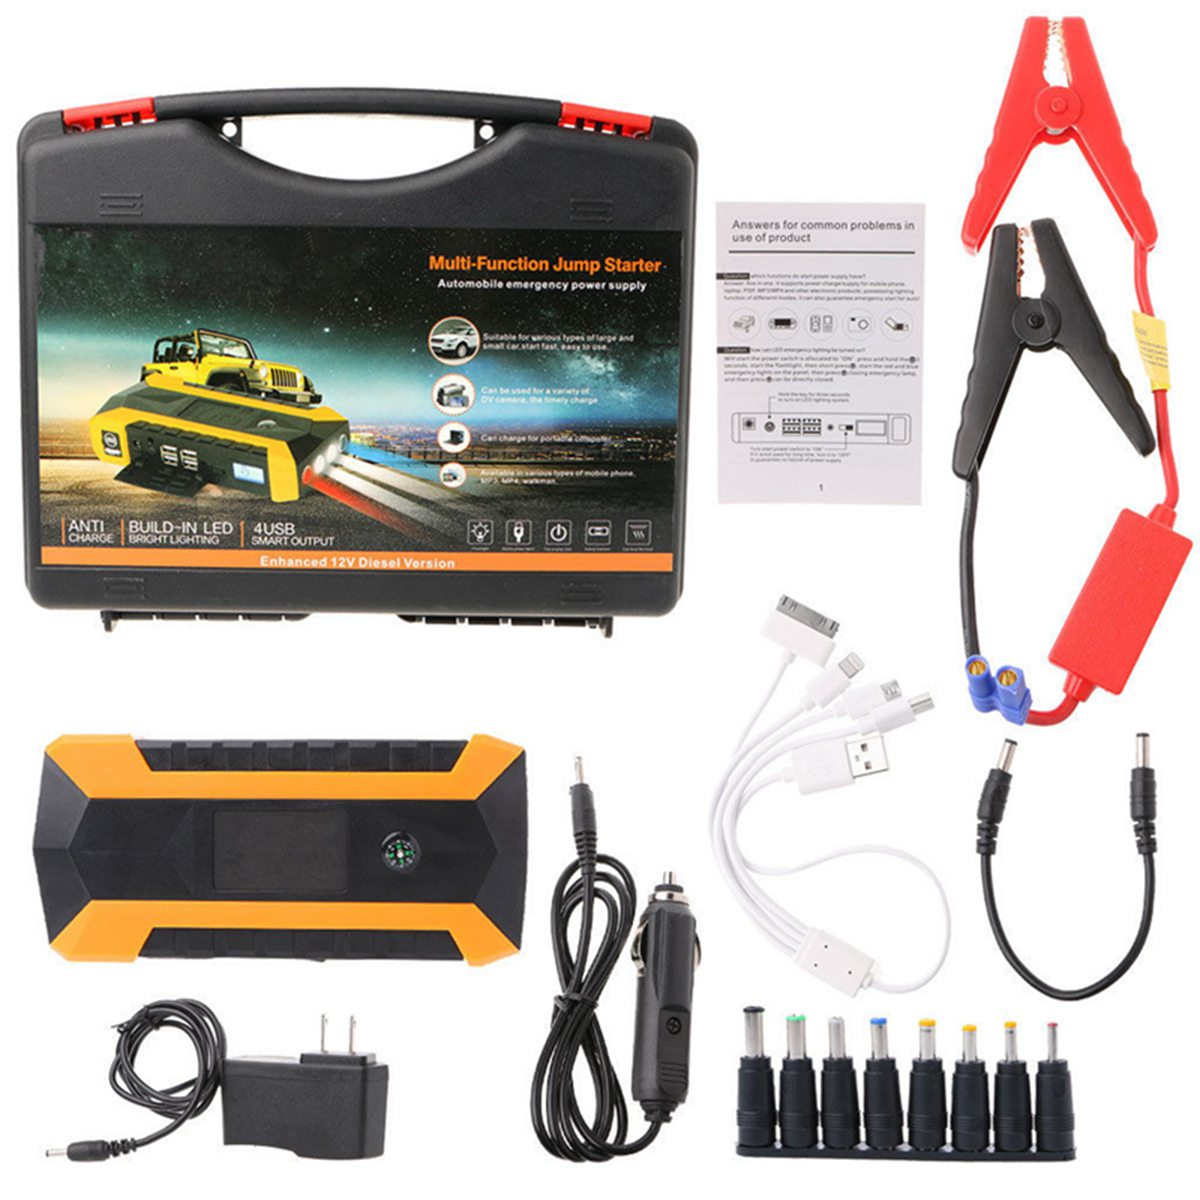 89800mAh LED Emergency Car Jump Starter 12V 4USB Charger Battery Power Bank Portable Car Battery Booster Charger Starting Device new 12v 89800mah portable 4usb car jump starter power bank tool kit booster charger battery automobile emergency led light